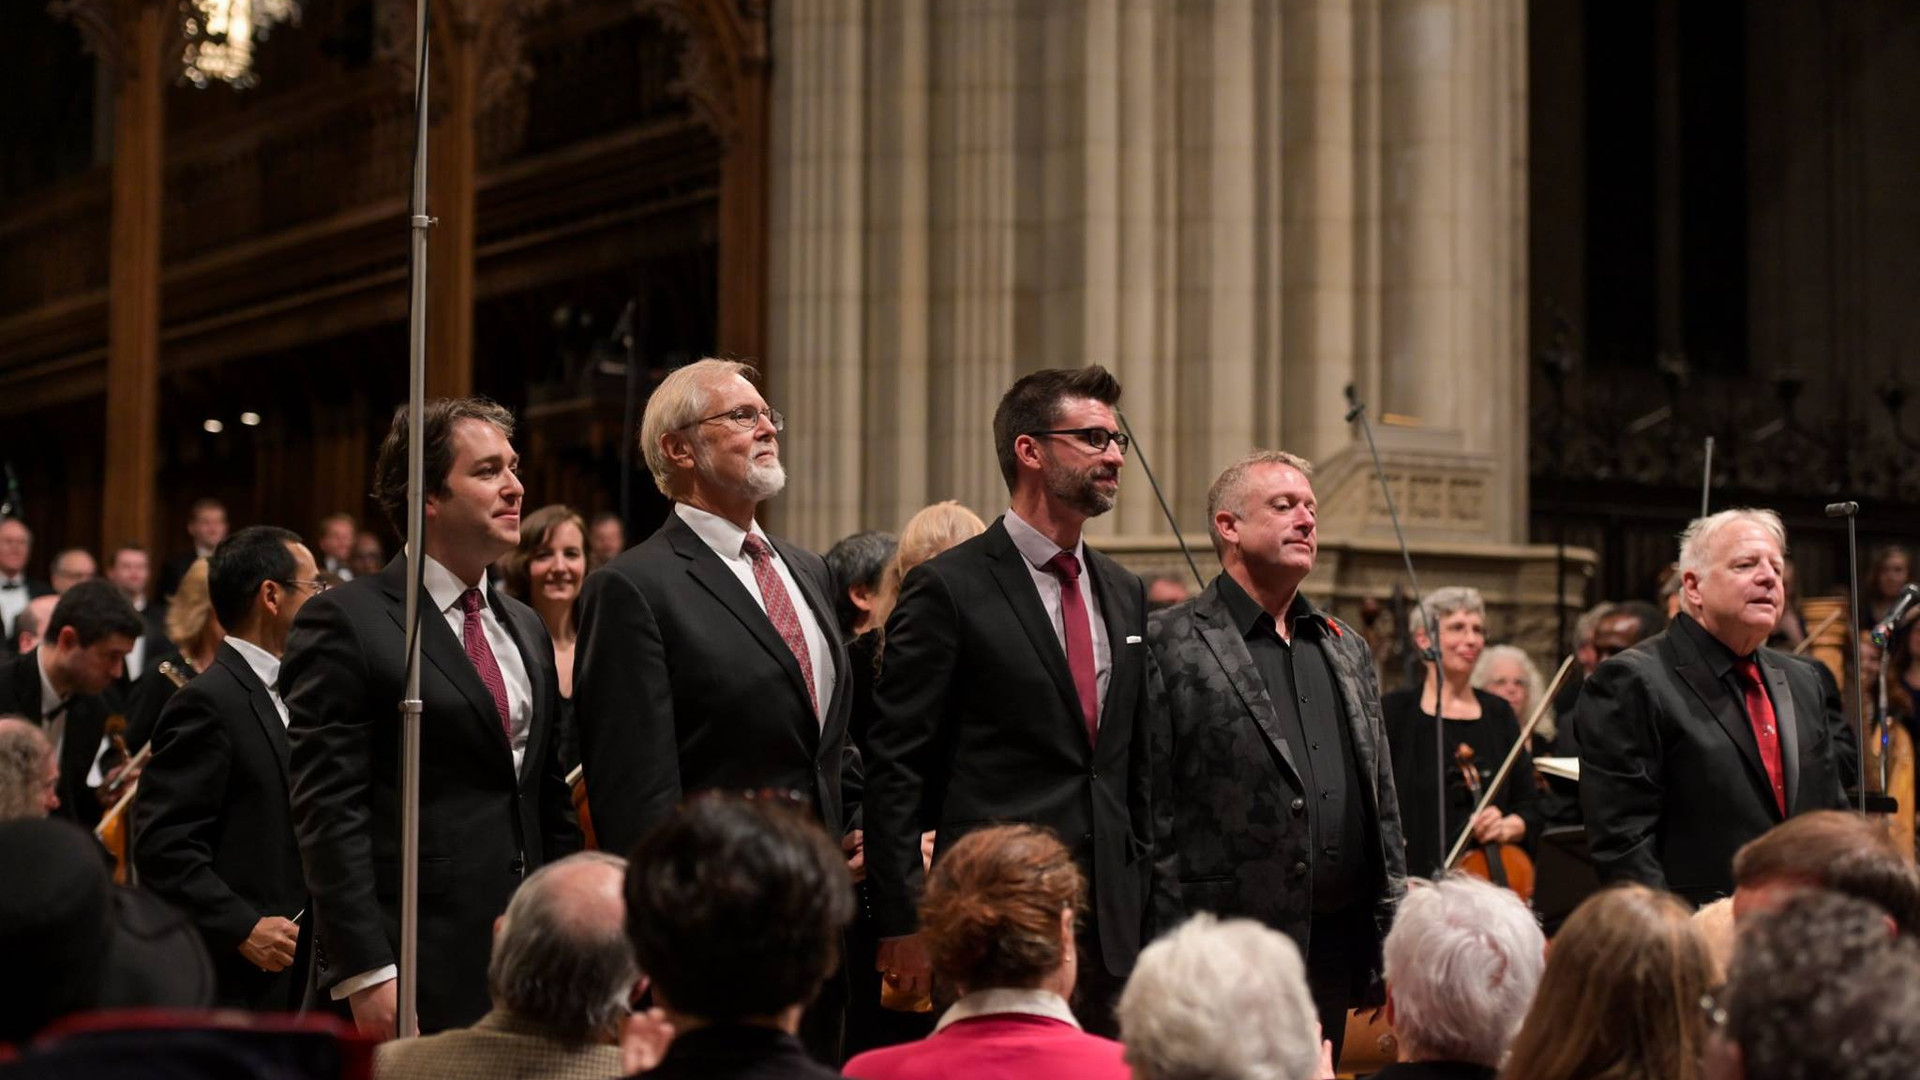 Leonard Slatkin, Charles Bruffy, Benedict Sheehan, Stephen Fox, and Vlad Morosan Kastalsky Requiem